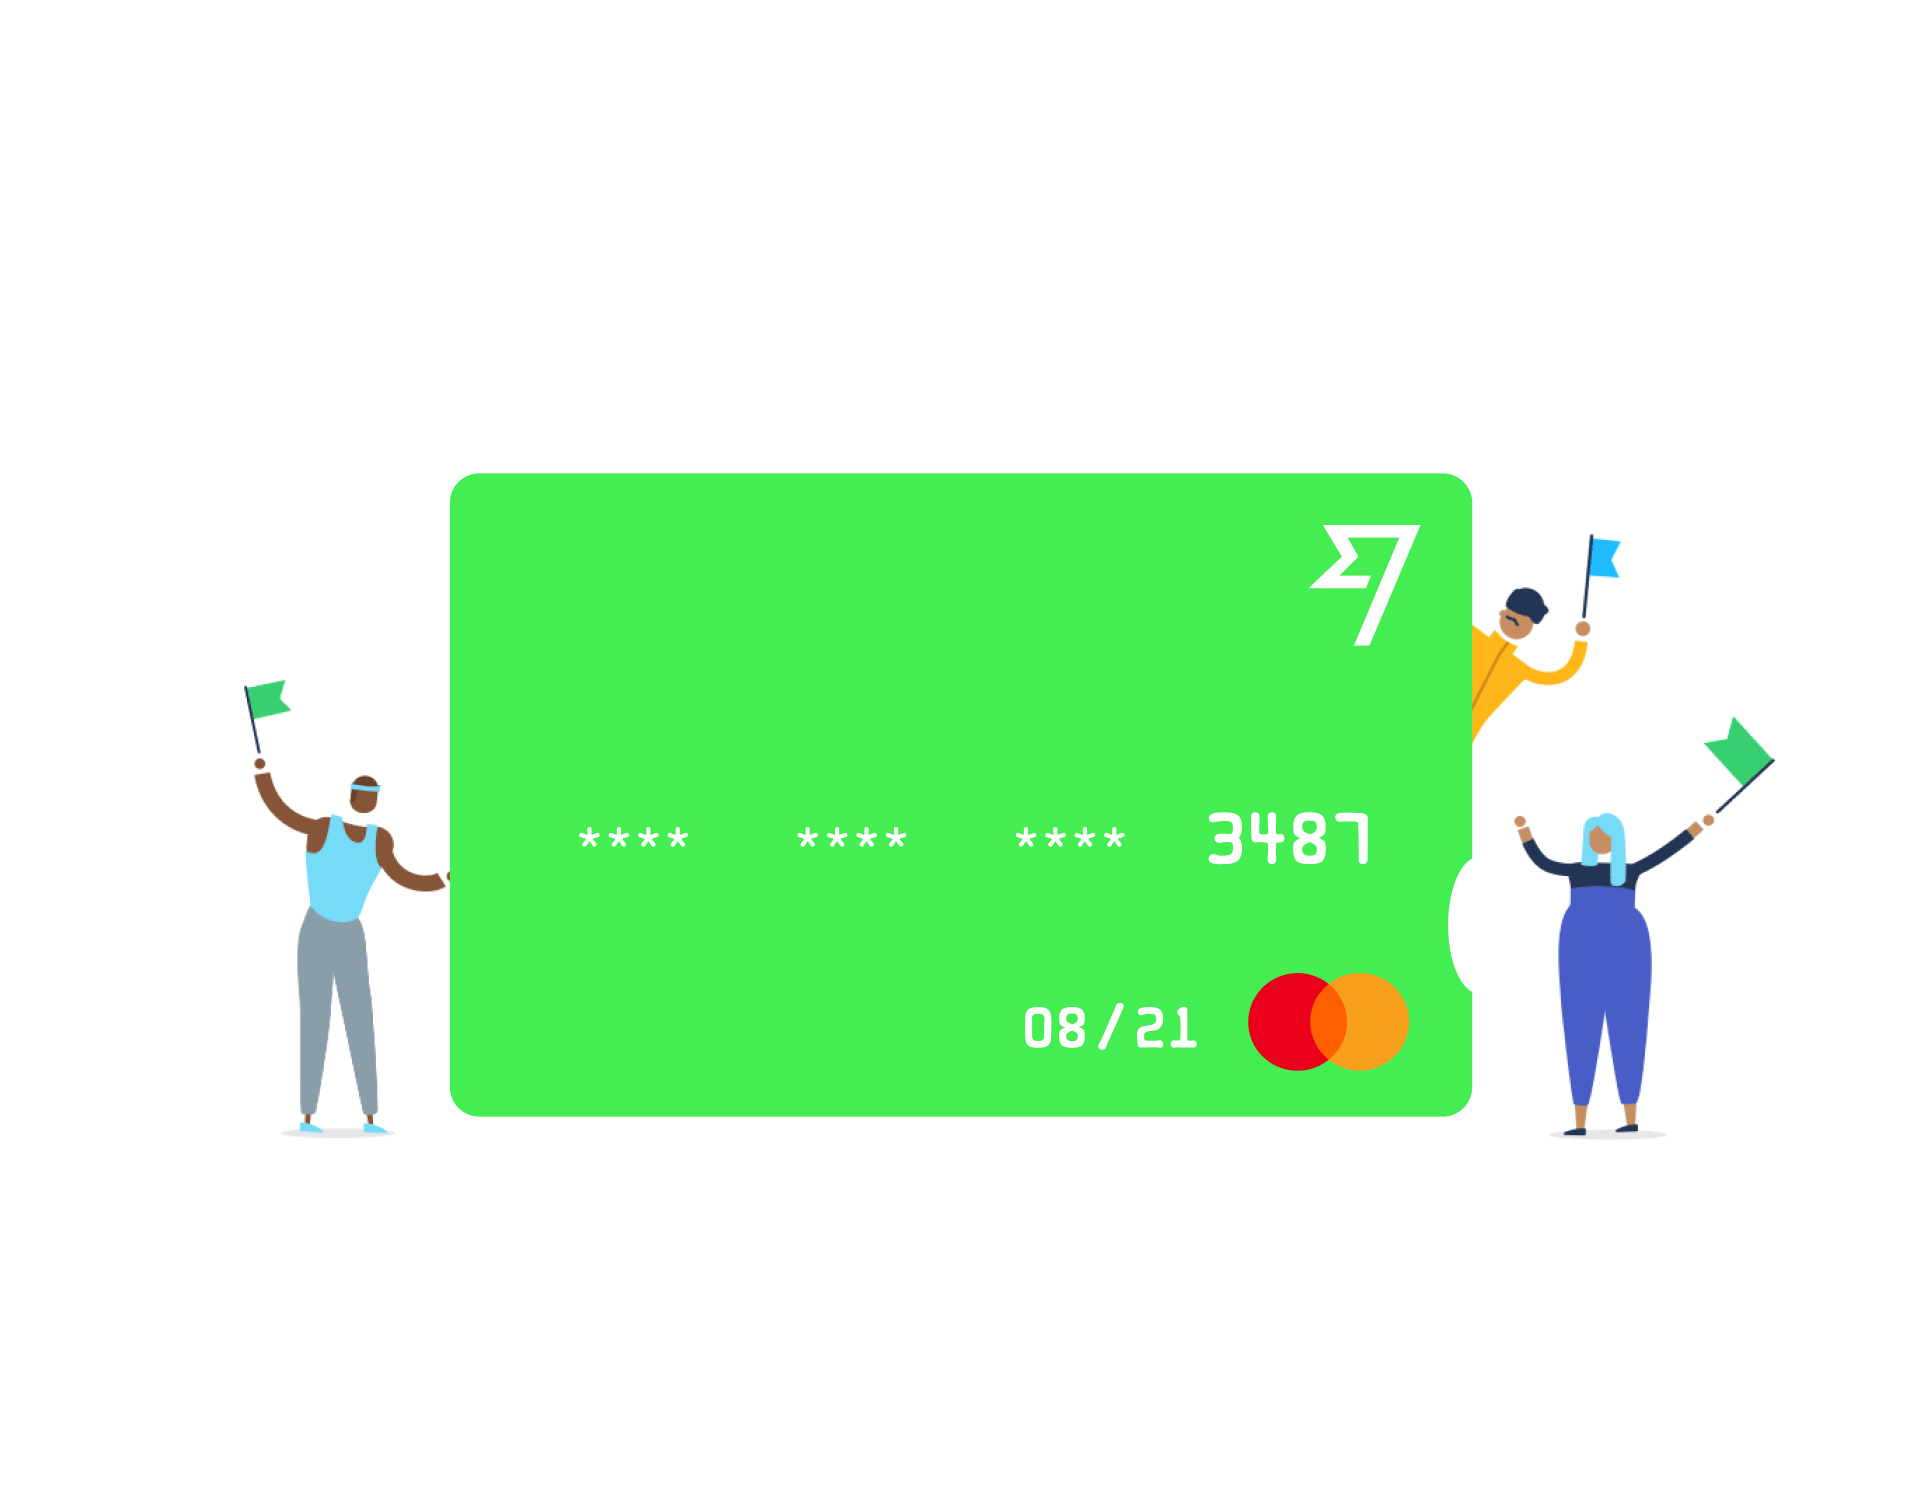 Set up your card seamlessly